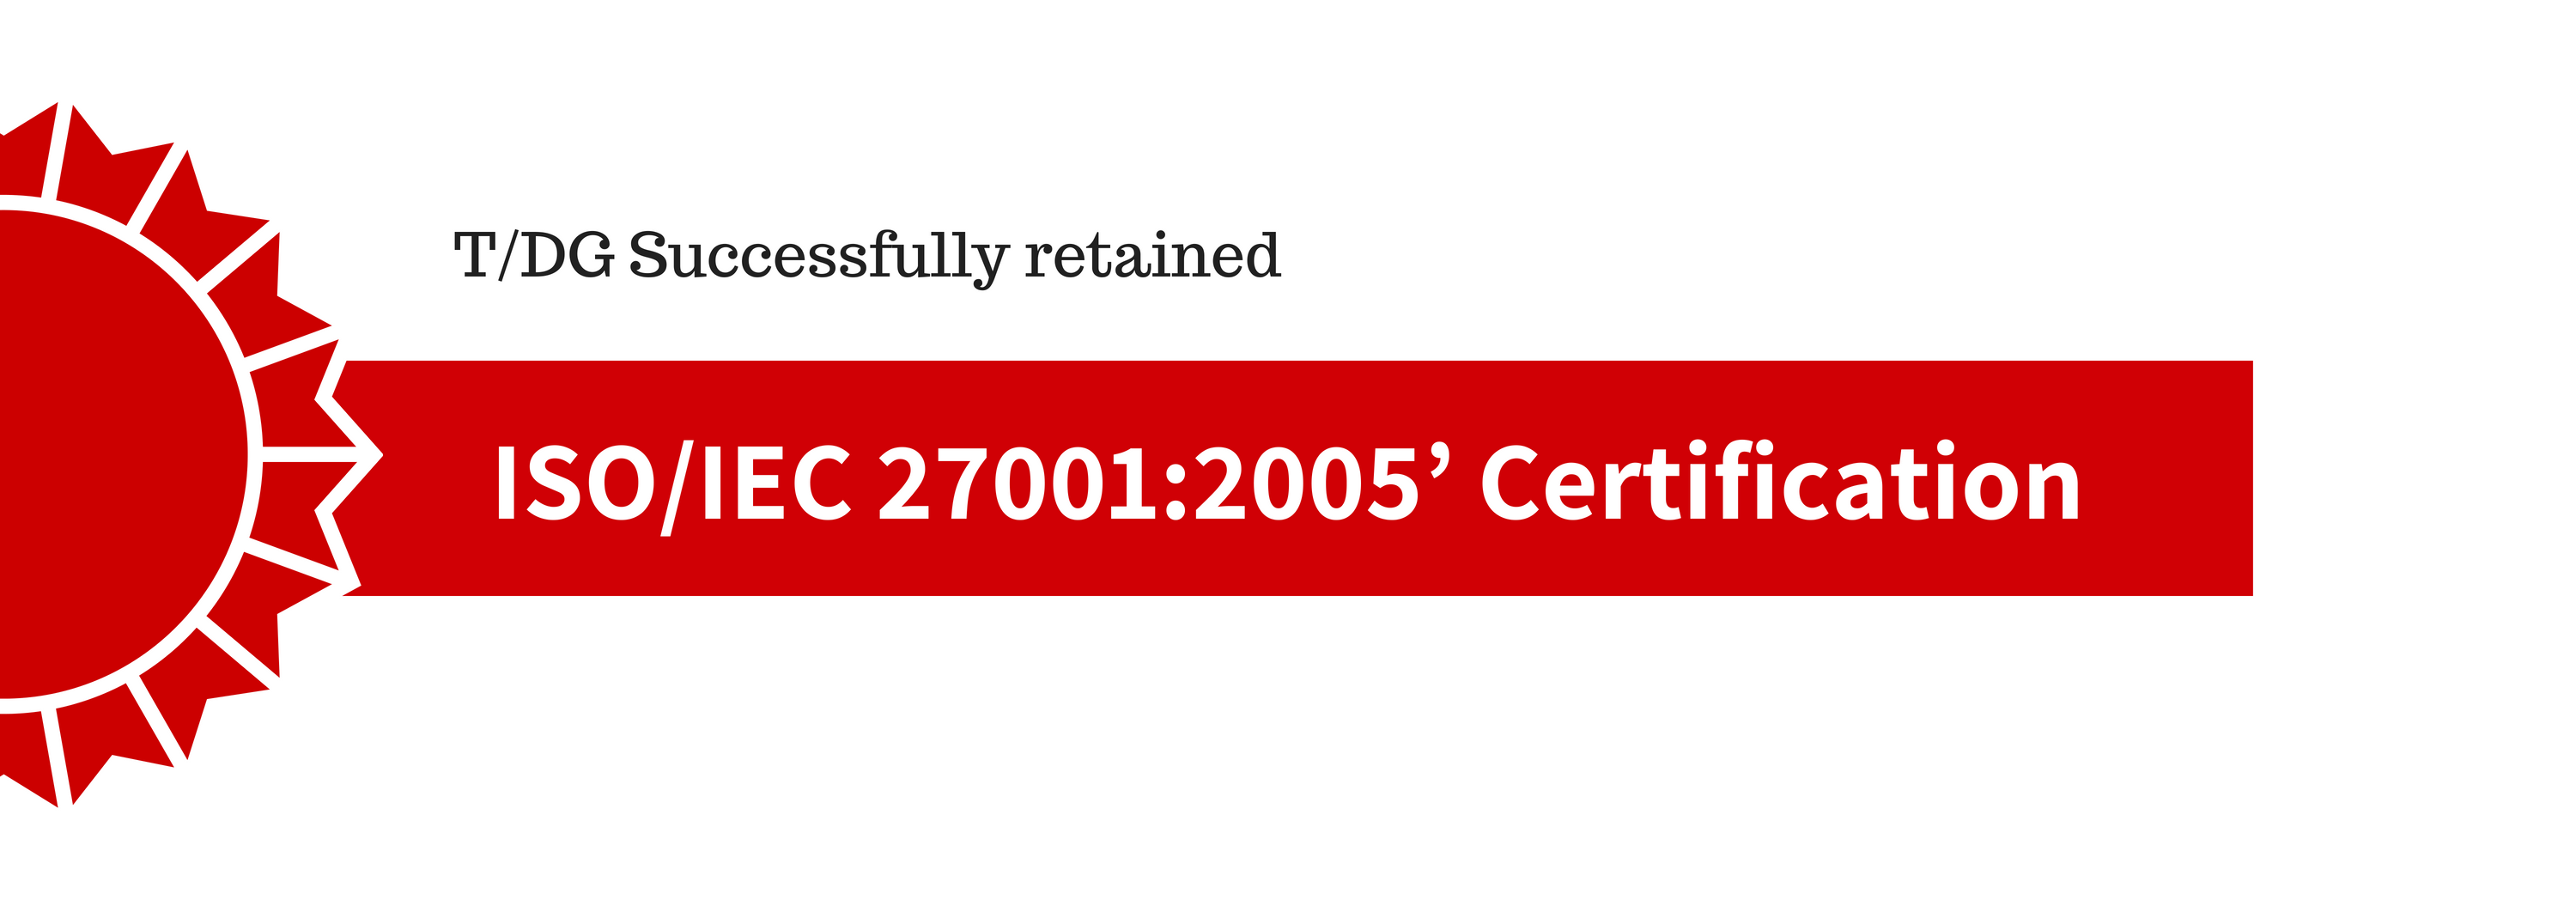 T/DG Successfully Retained Its ISO/ IEC 27001: 2005 Certification